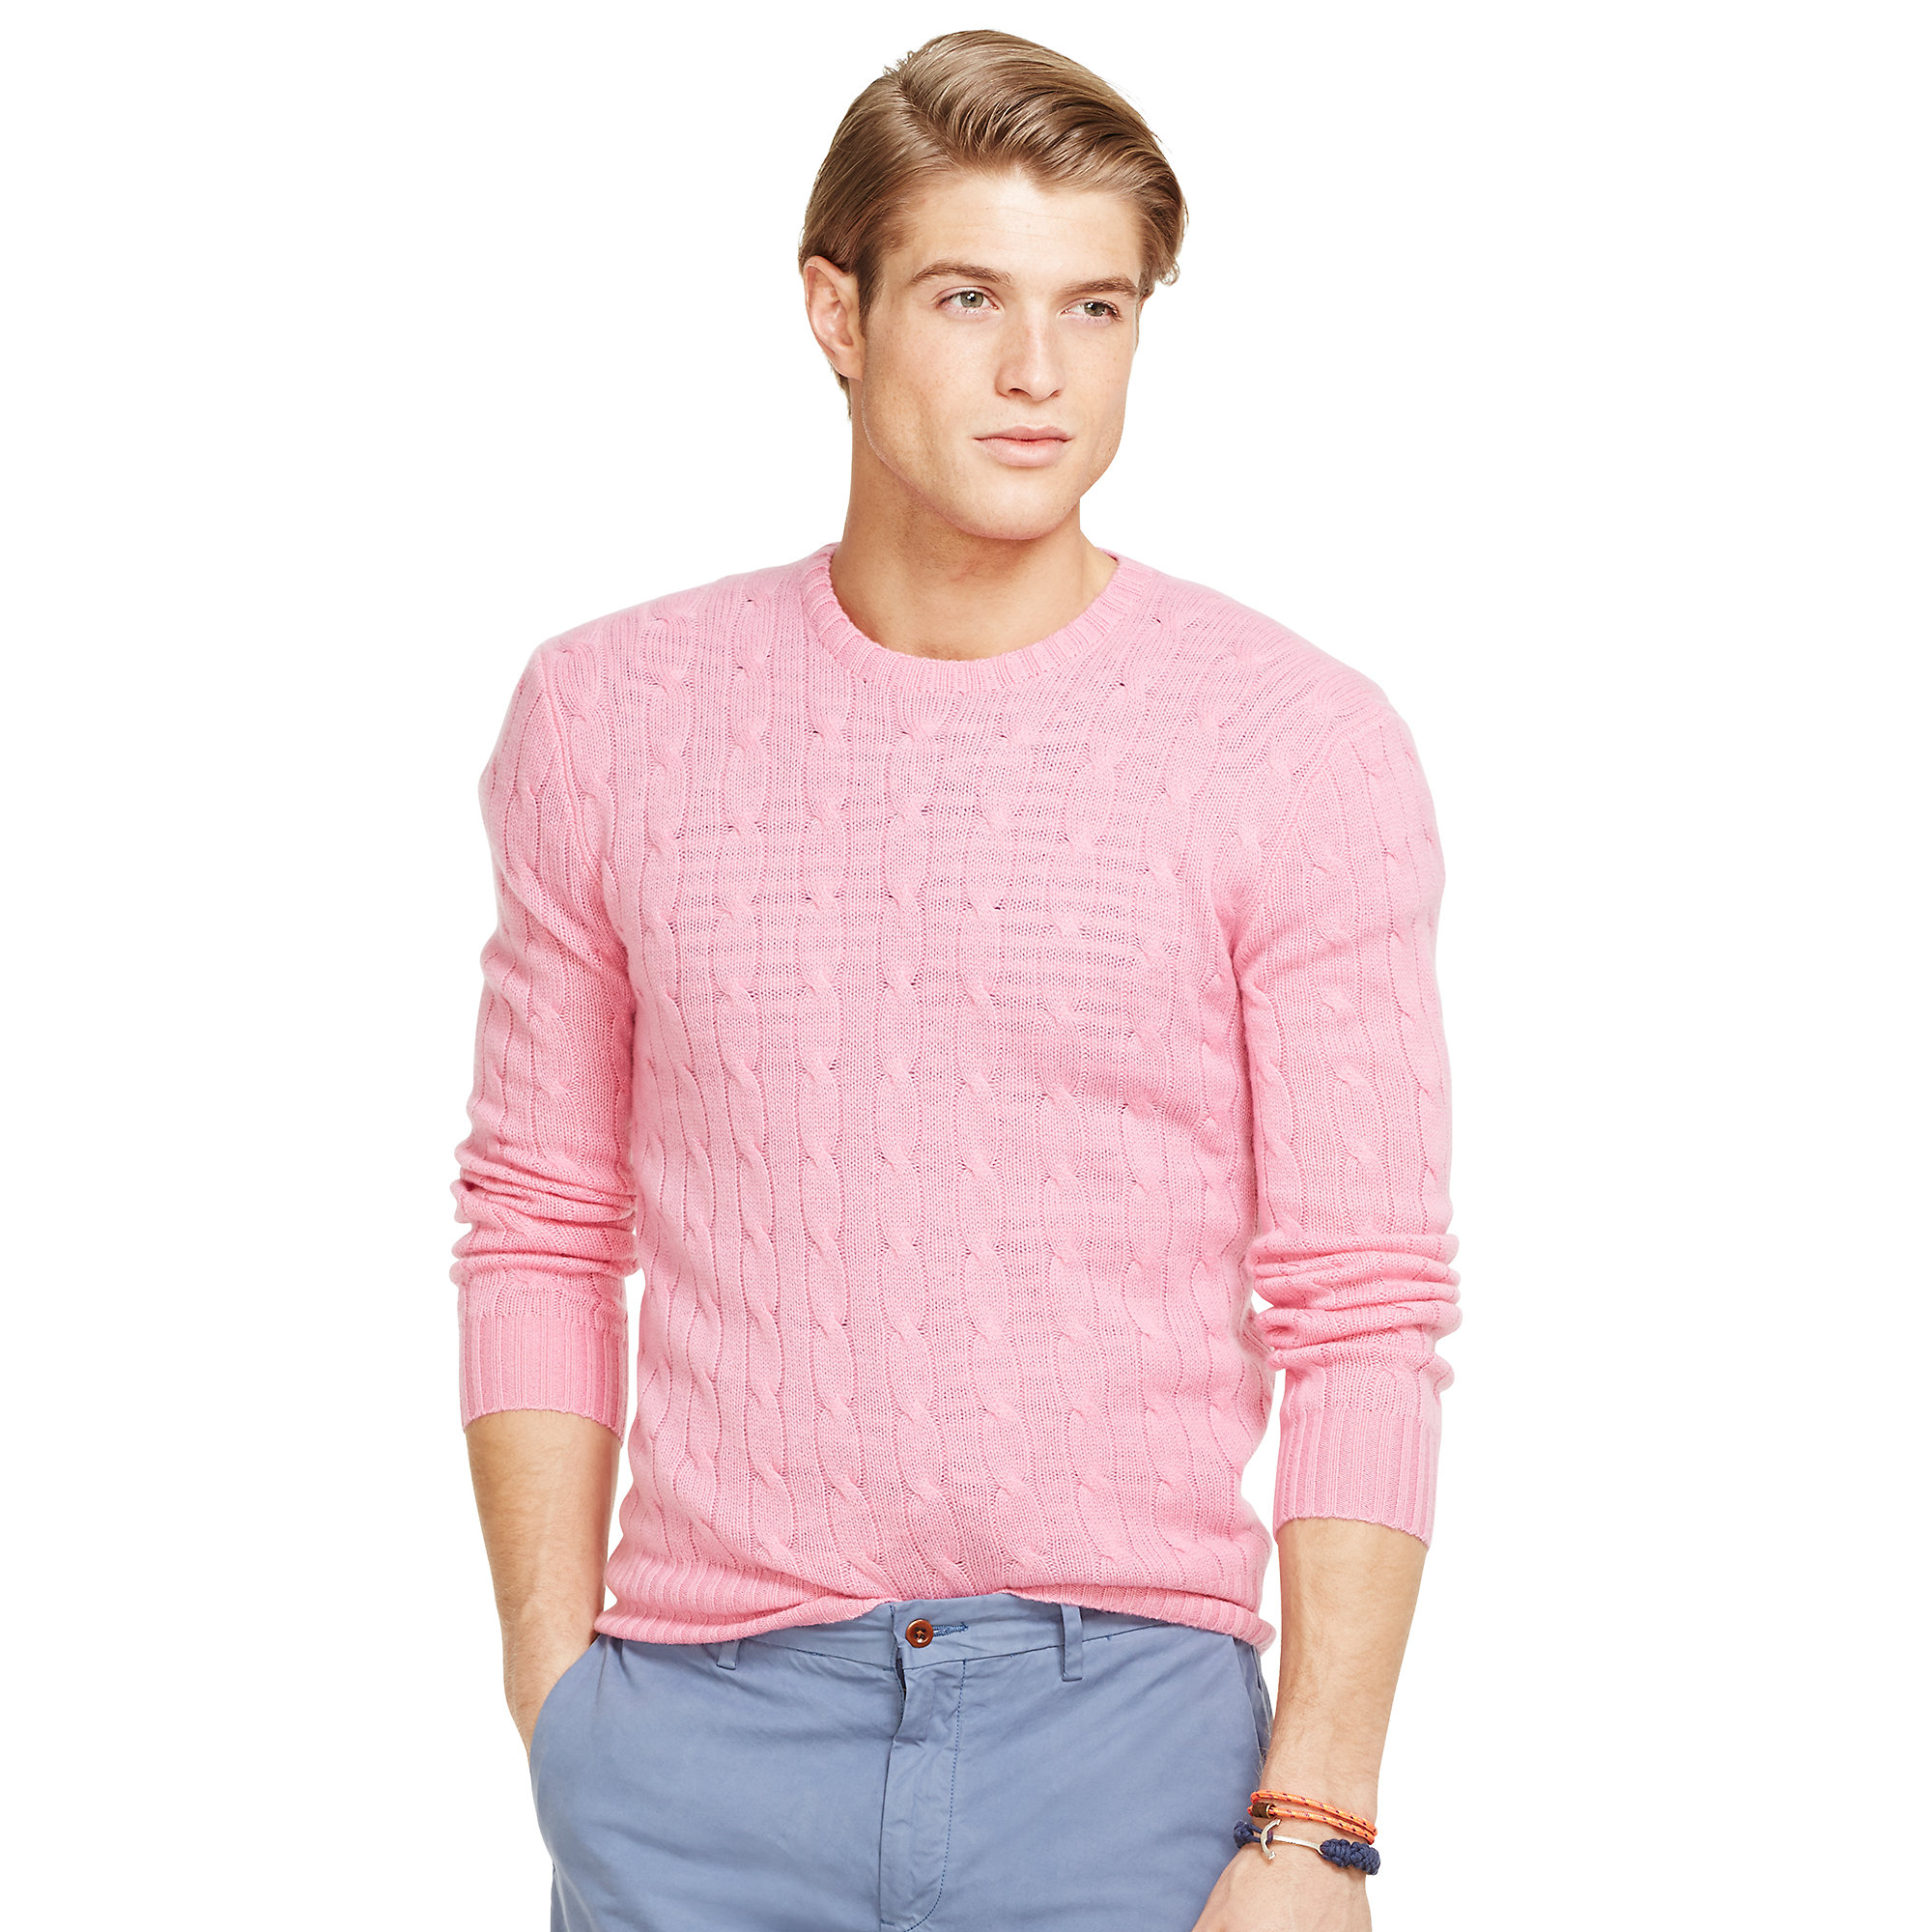 6a0b1d4c1 Polo Ralph Lauren Cable-Knit Cashmere Sweater in Pink for Men - Lyst